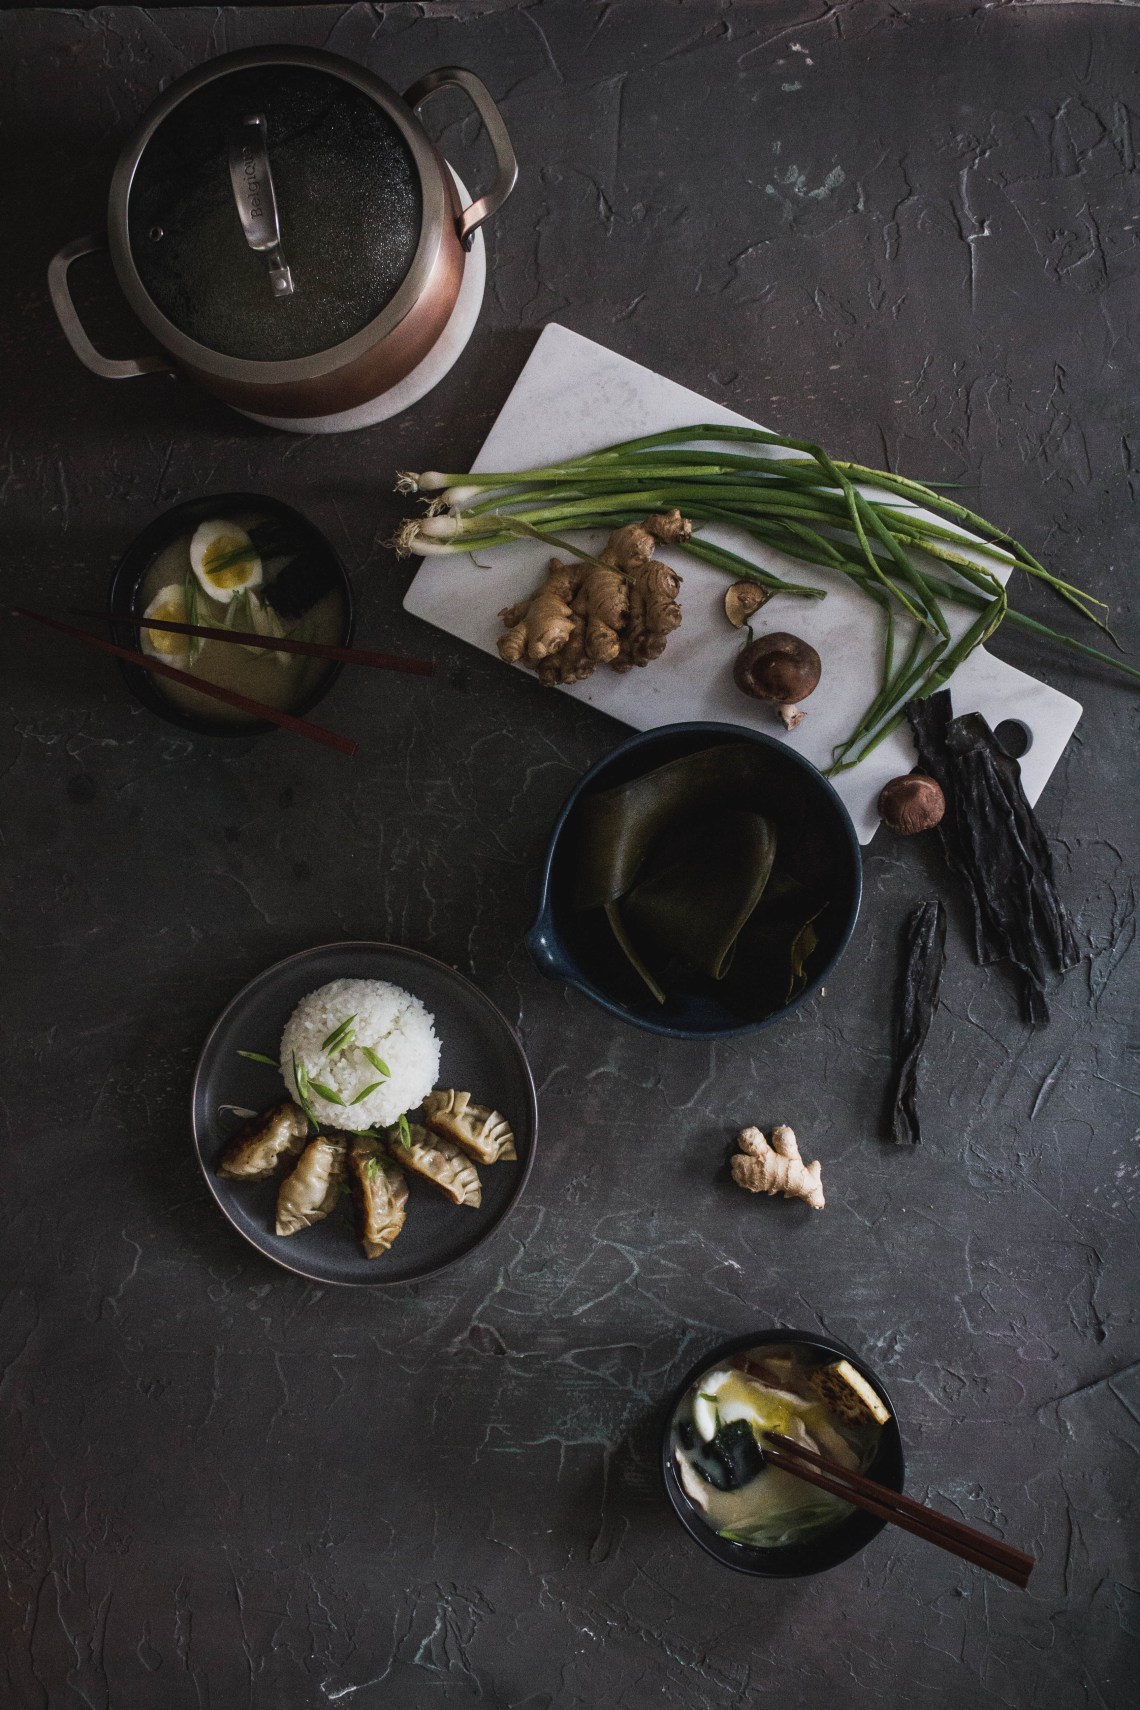 Morning Miso Soup Recipe from Boiled Wheat Blog by Kristen McSorley, Bozeman Montana Photography